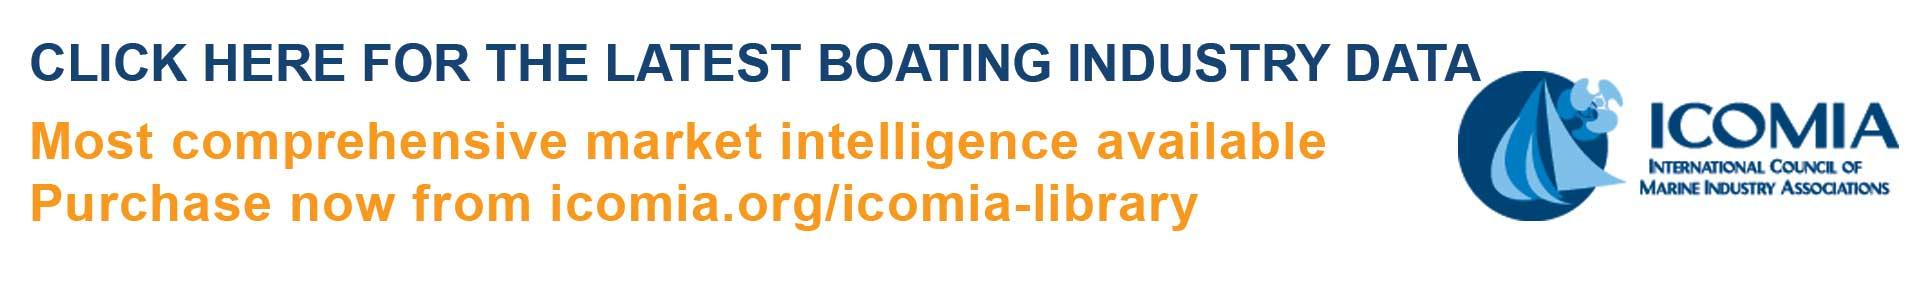 Icomia latest library publication